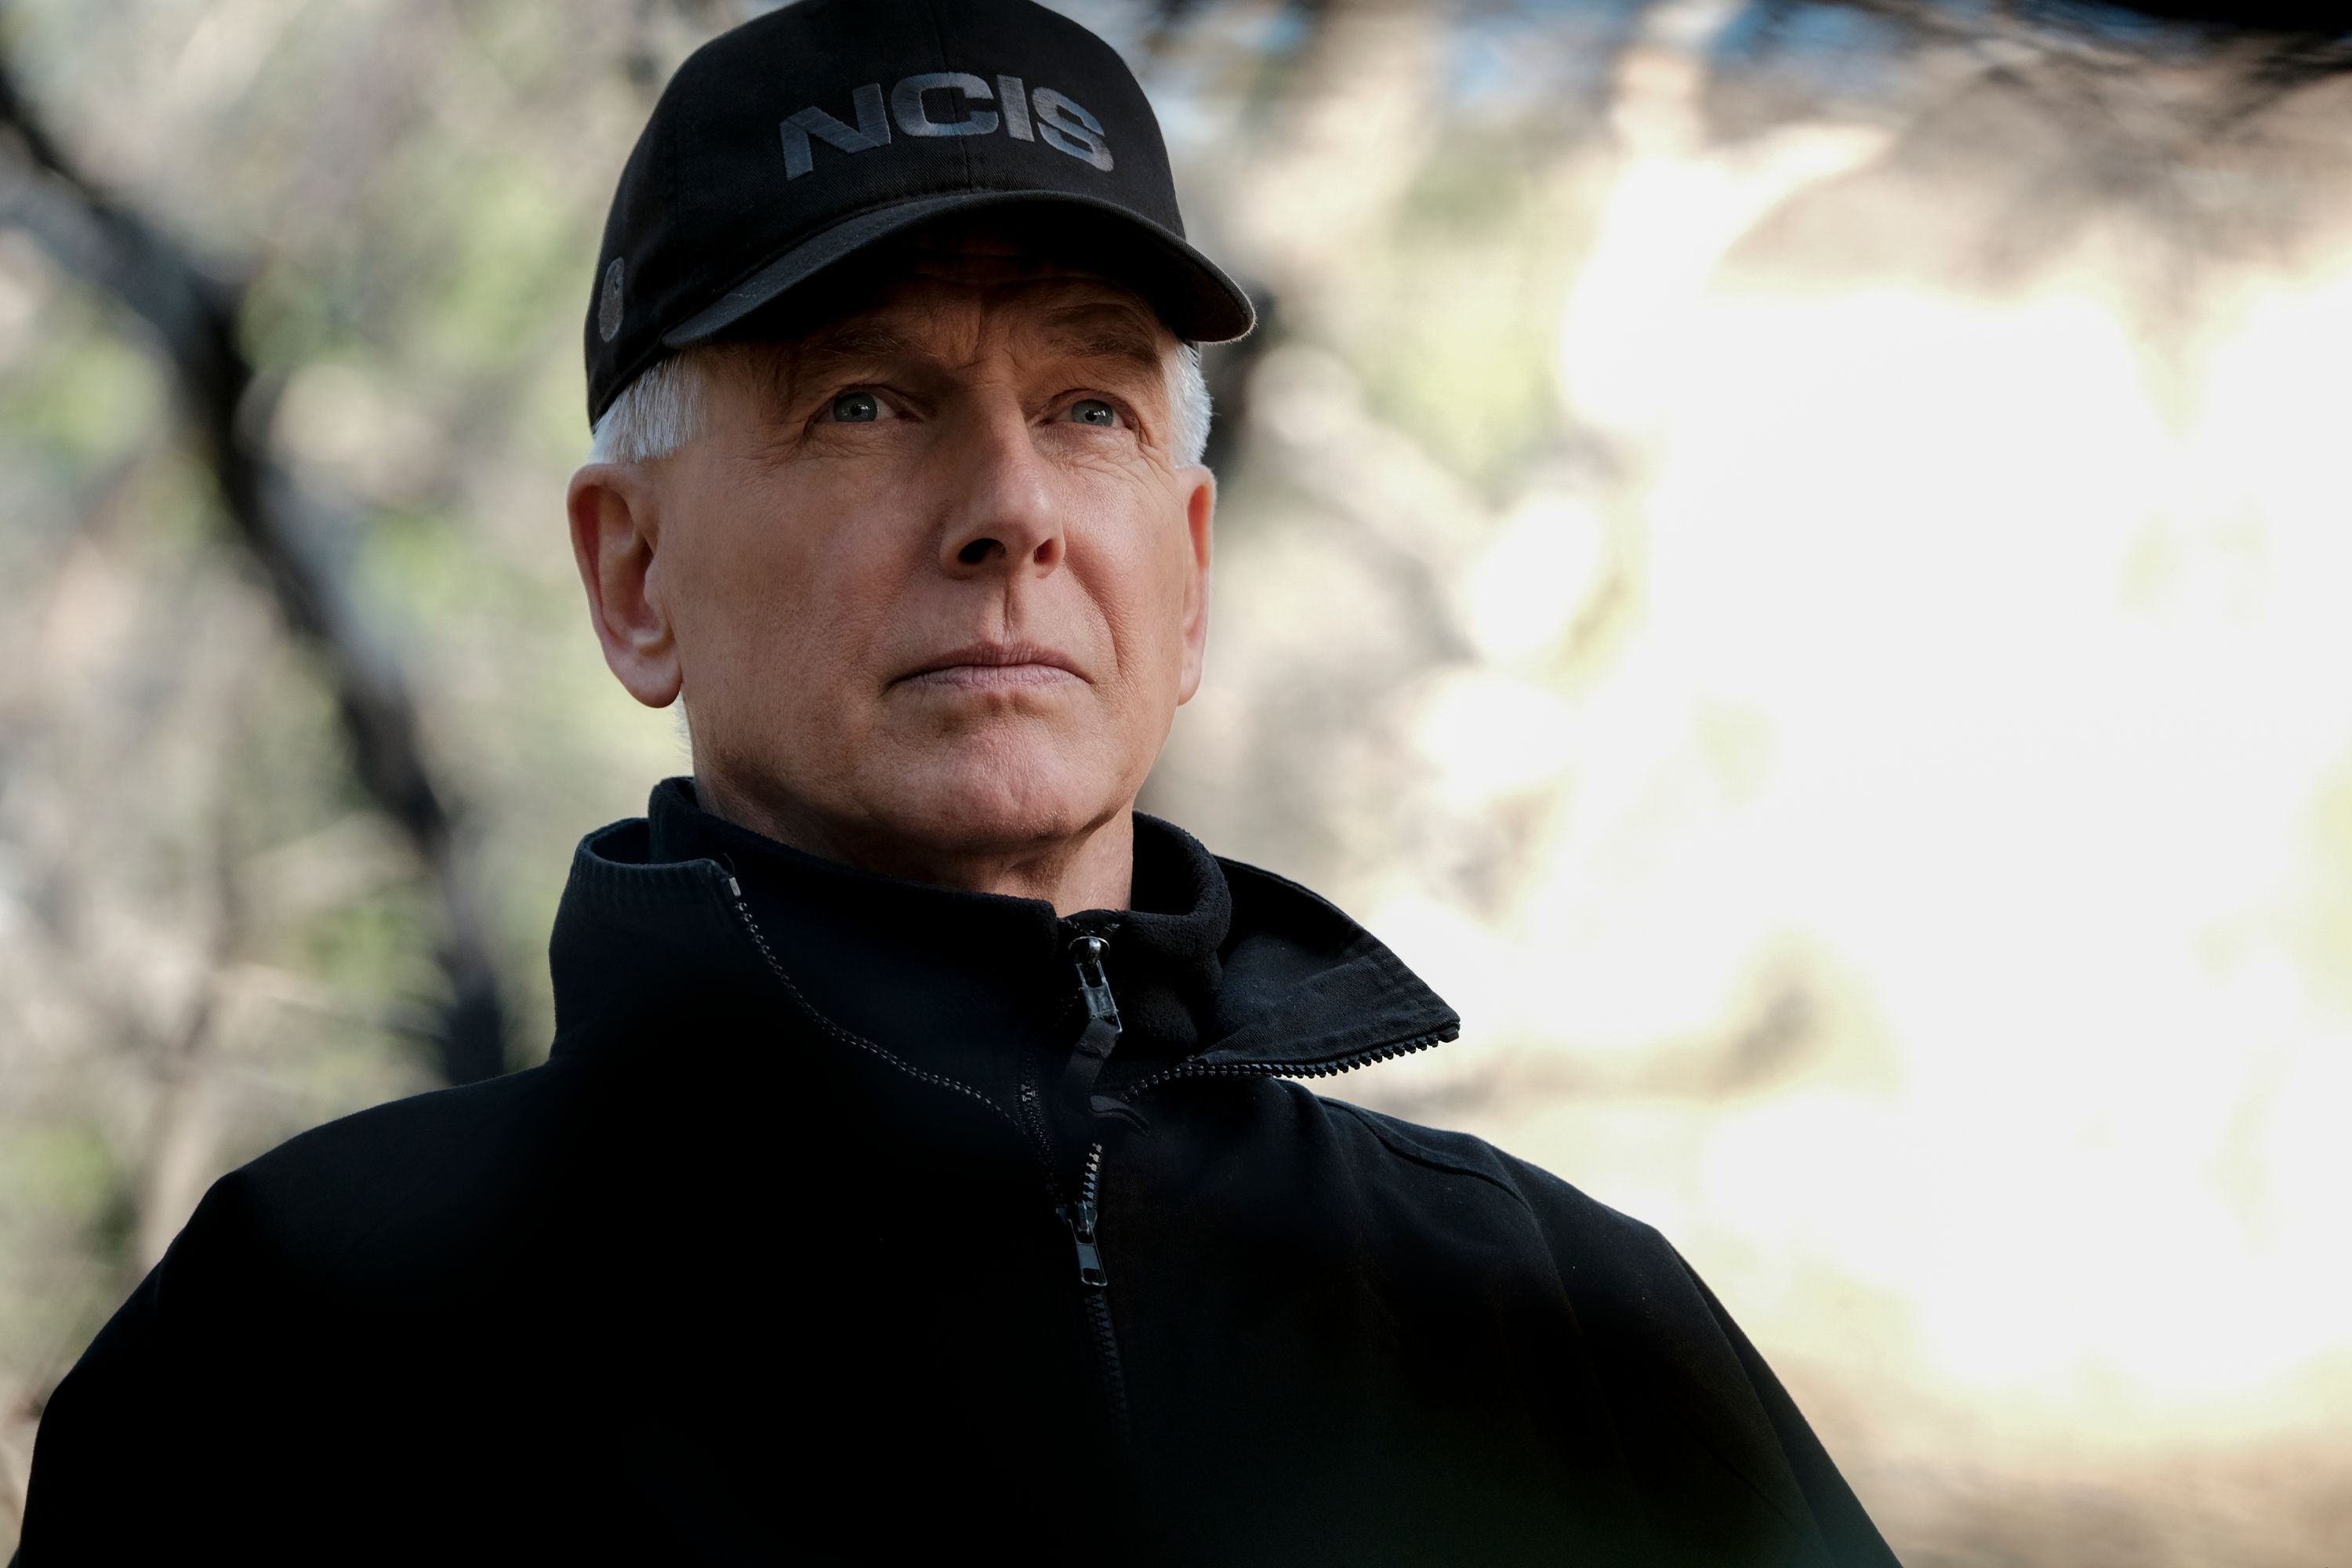 A man wearing an NCIS cap stares into the camera.